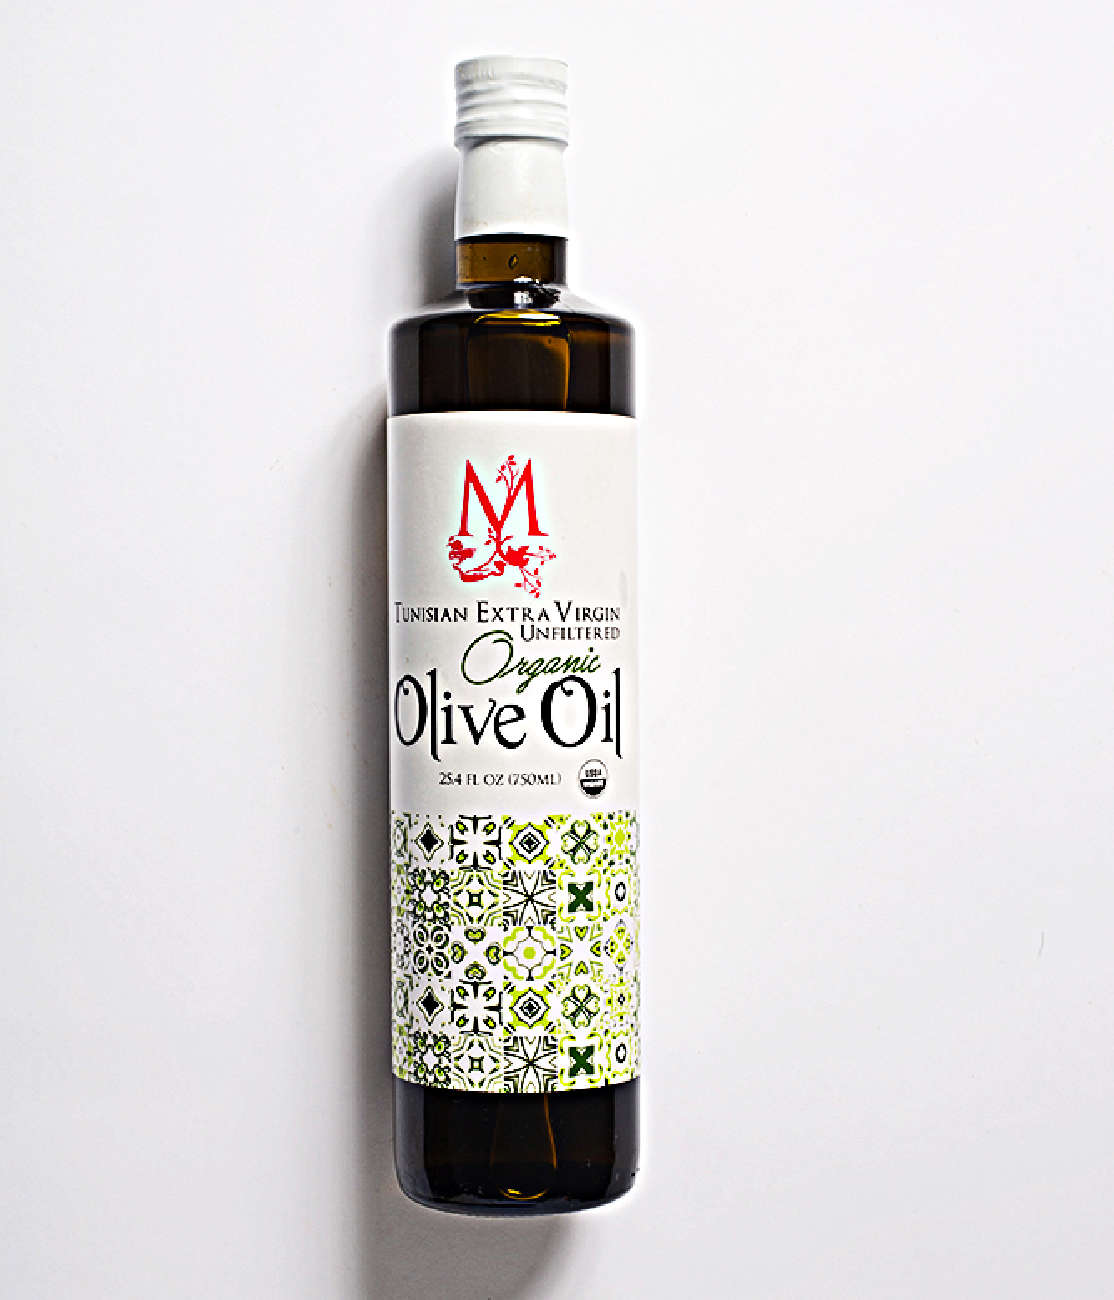 Extra virgin olive oil 750ml Image 2